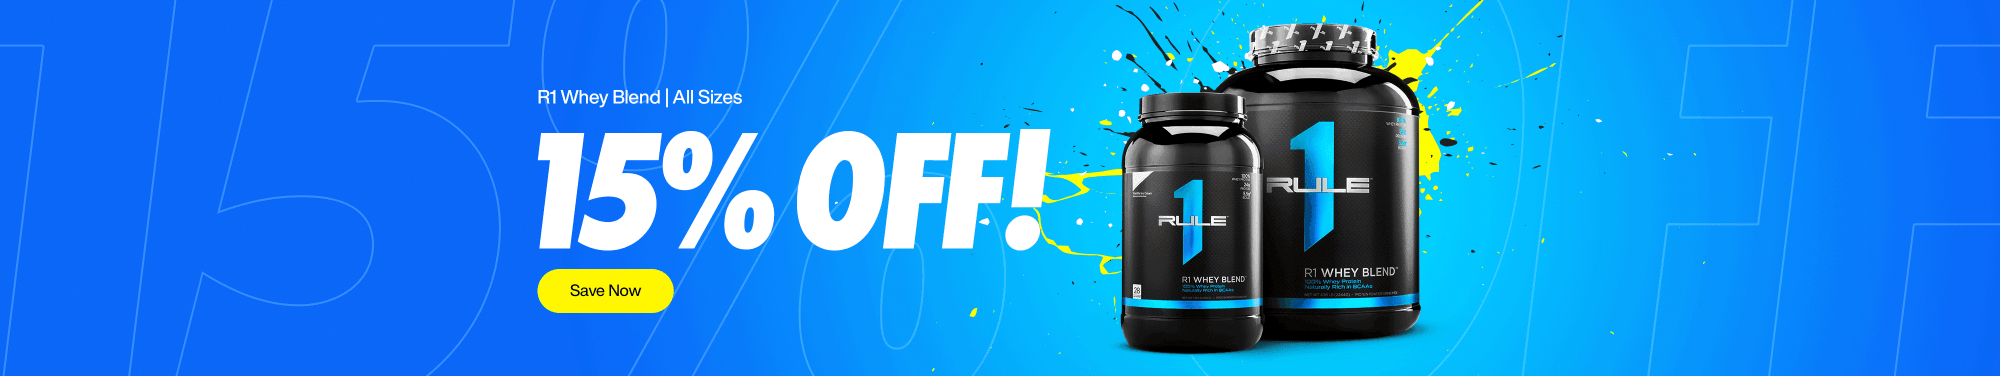 R1 Whey Blend 15% Off